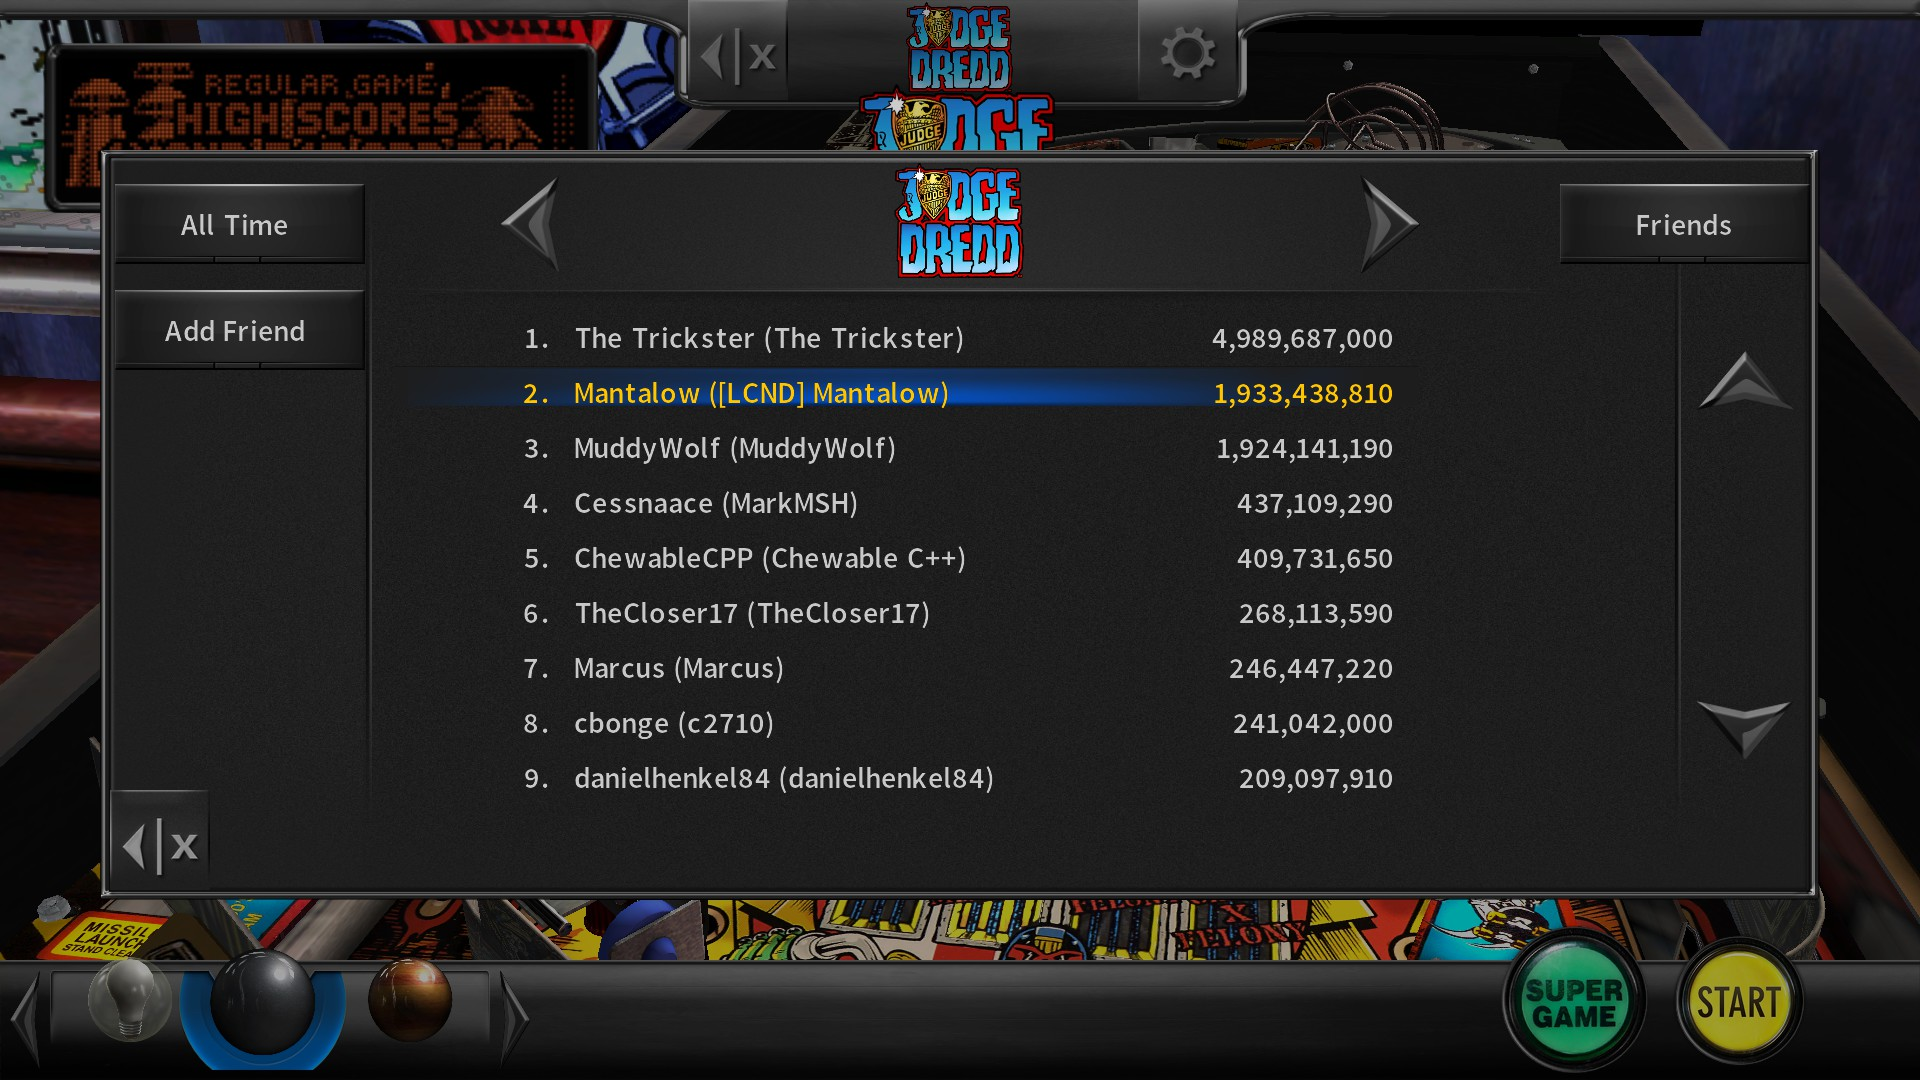 Pinball Arcade: Judge Dredd™ 1,933,438,810 points